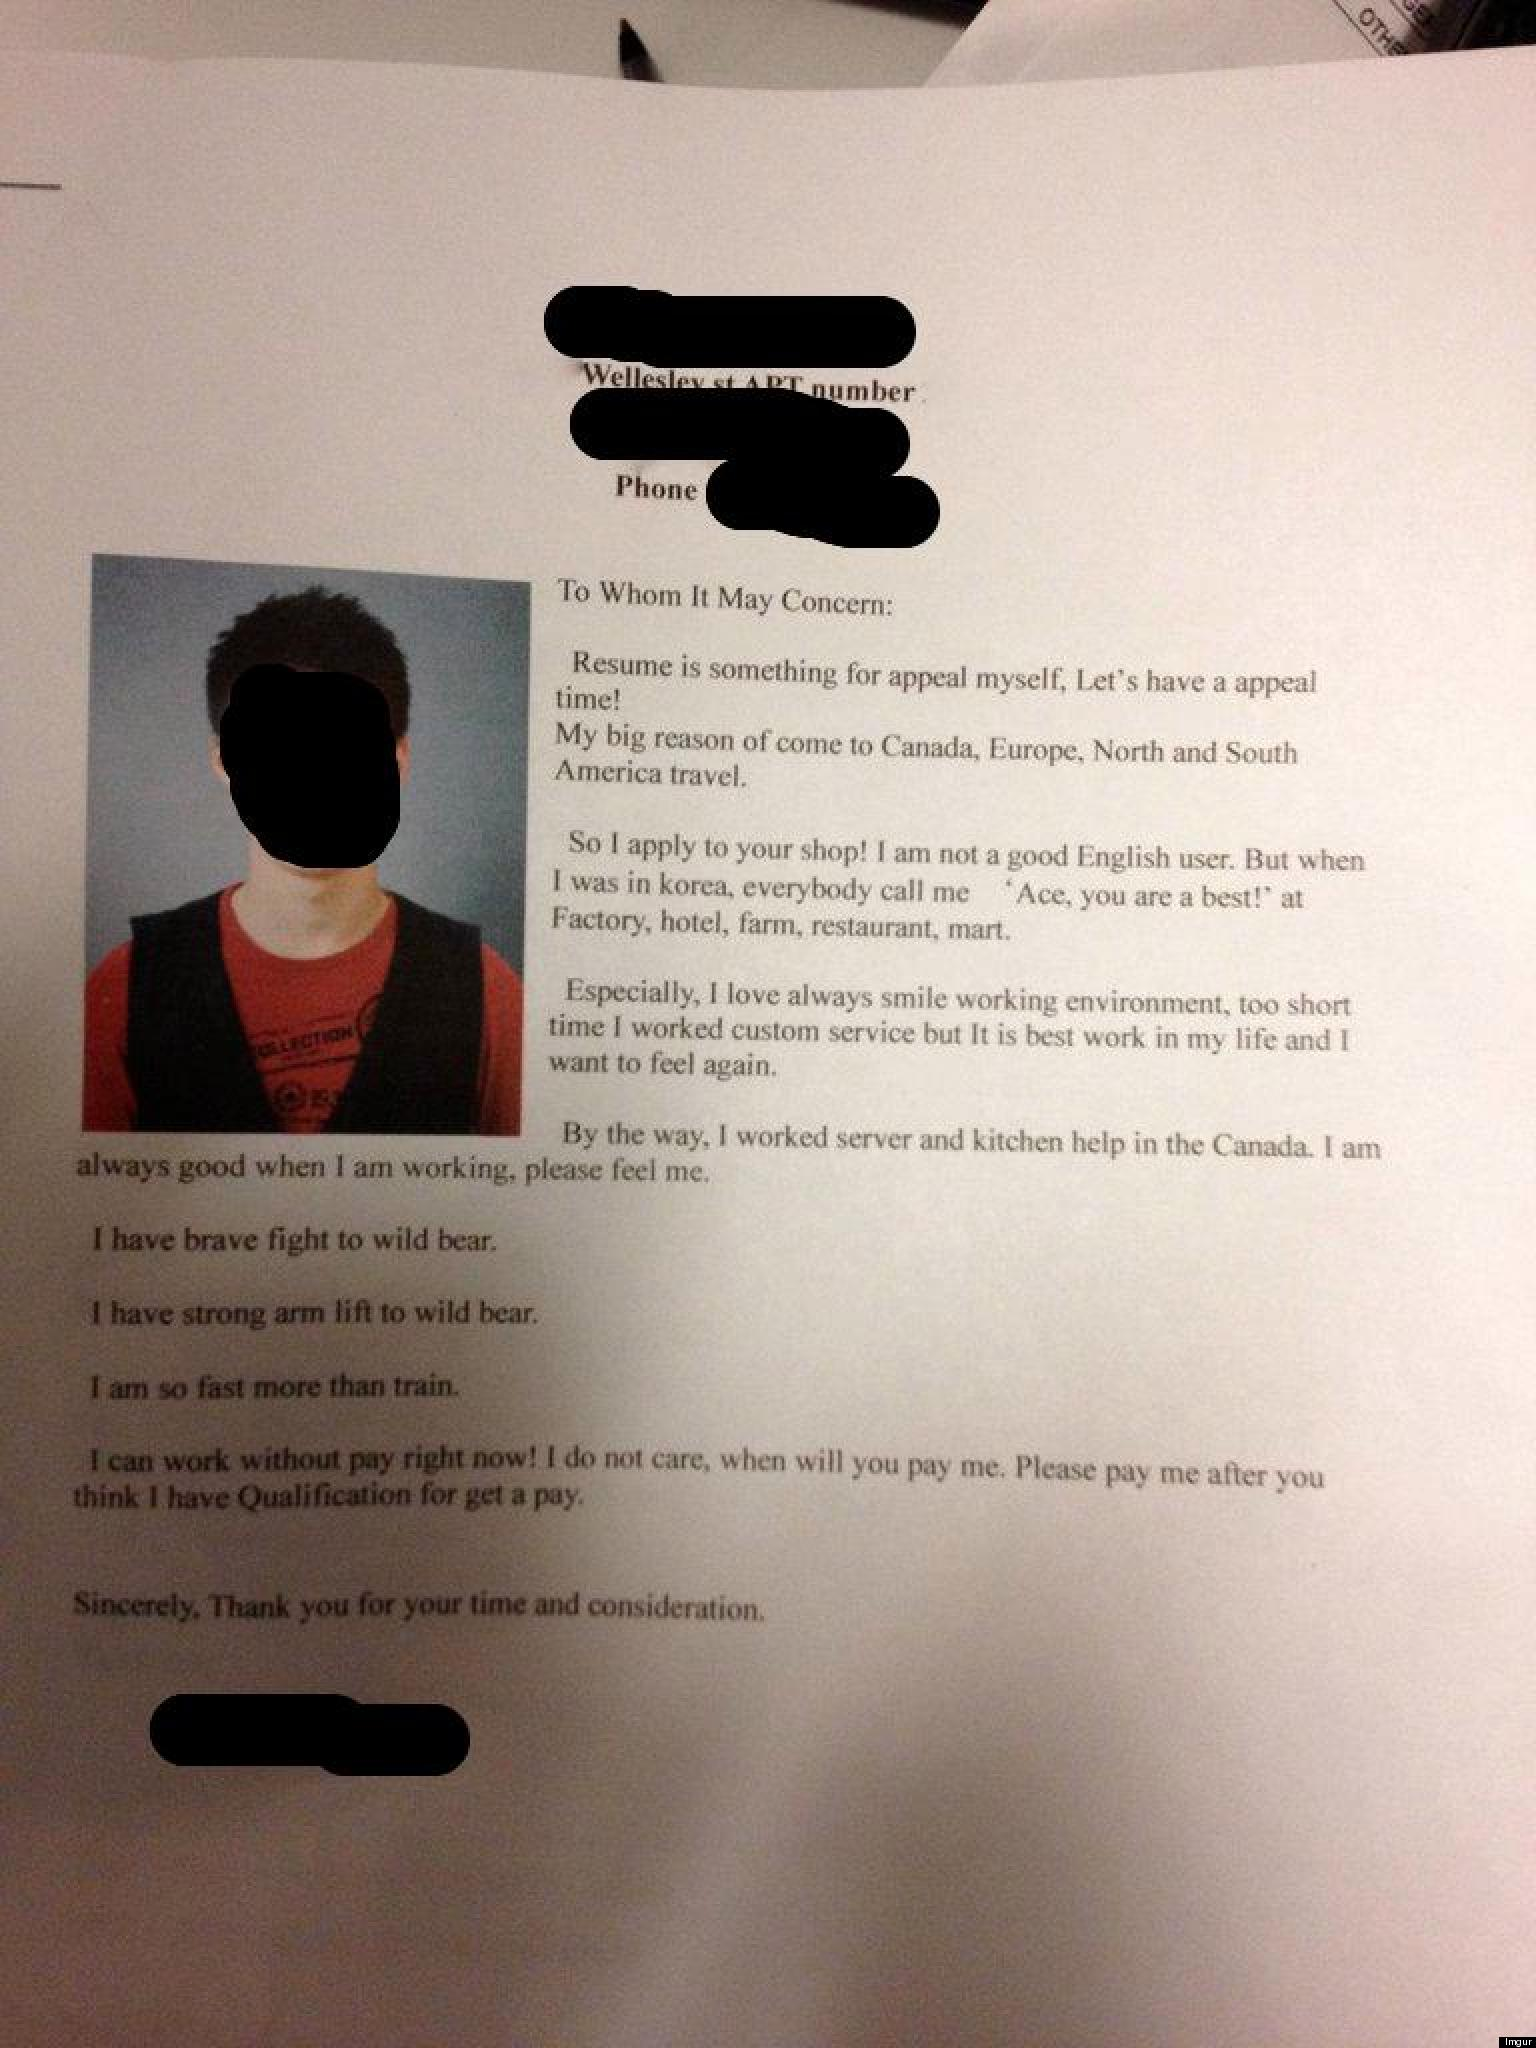 best viral cover letter ever south korea man writes epic job application photo huffpost - Fast Cover Letter